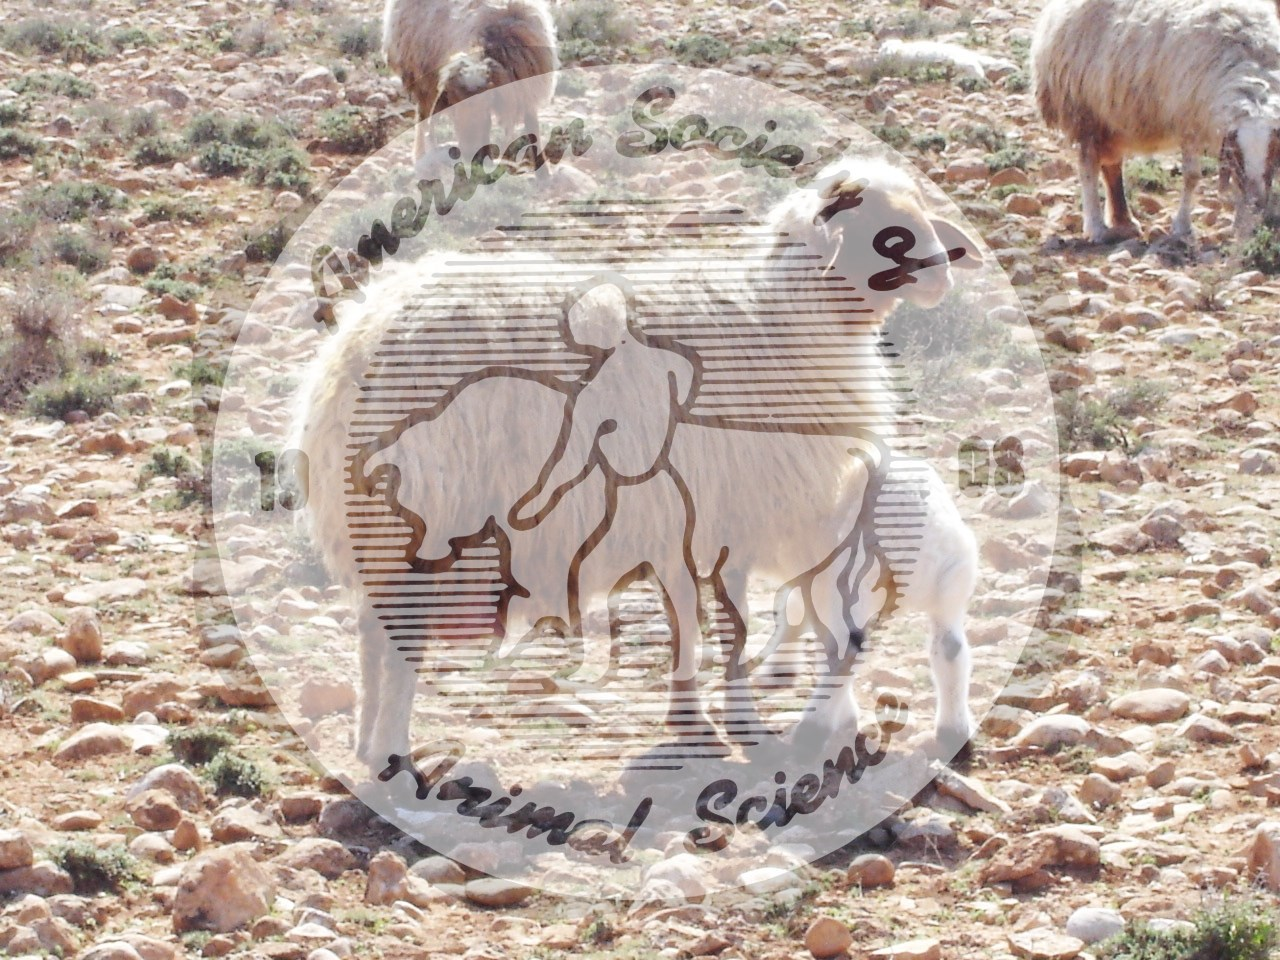 The Awassi, the most common breed of sheep in the Middle East, is a fat-tailed multi-purpose breed used for meat, milk and wool.  Rams are horned, but ewes usually are polled.  Their head and legs are usually white to brown, sometimes including black multi-coloring.  The Awassi evolved over centuries for hardiness, disease resistance and ability to survive in hot and dry environments typical of much of the Middle East.  Recently, they have been selected for milk production.  The fleece usually is used for carpet.  This ewe and lamb are typical of the Awasii in the Middle East, and the background in this photo typifies the harsh environment the breed has adapted to.  NAL #5164 and #5166 also illustrate Awassi sheep, and the Image Gallery home page shows a link to Breeds of Livestock including Awassi sheep.